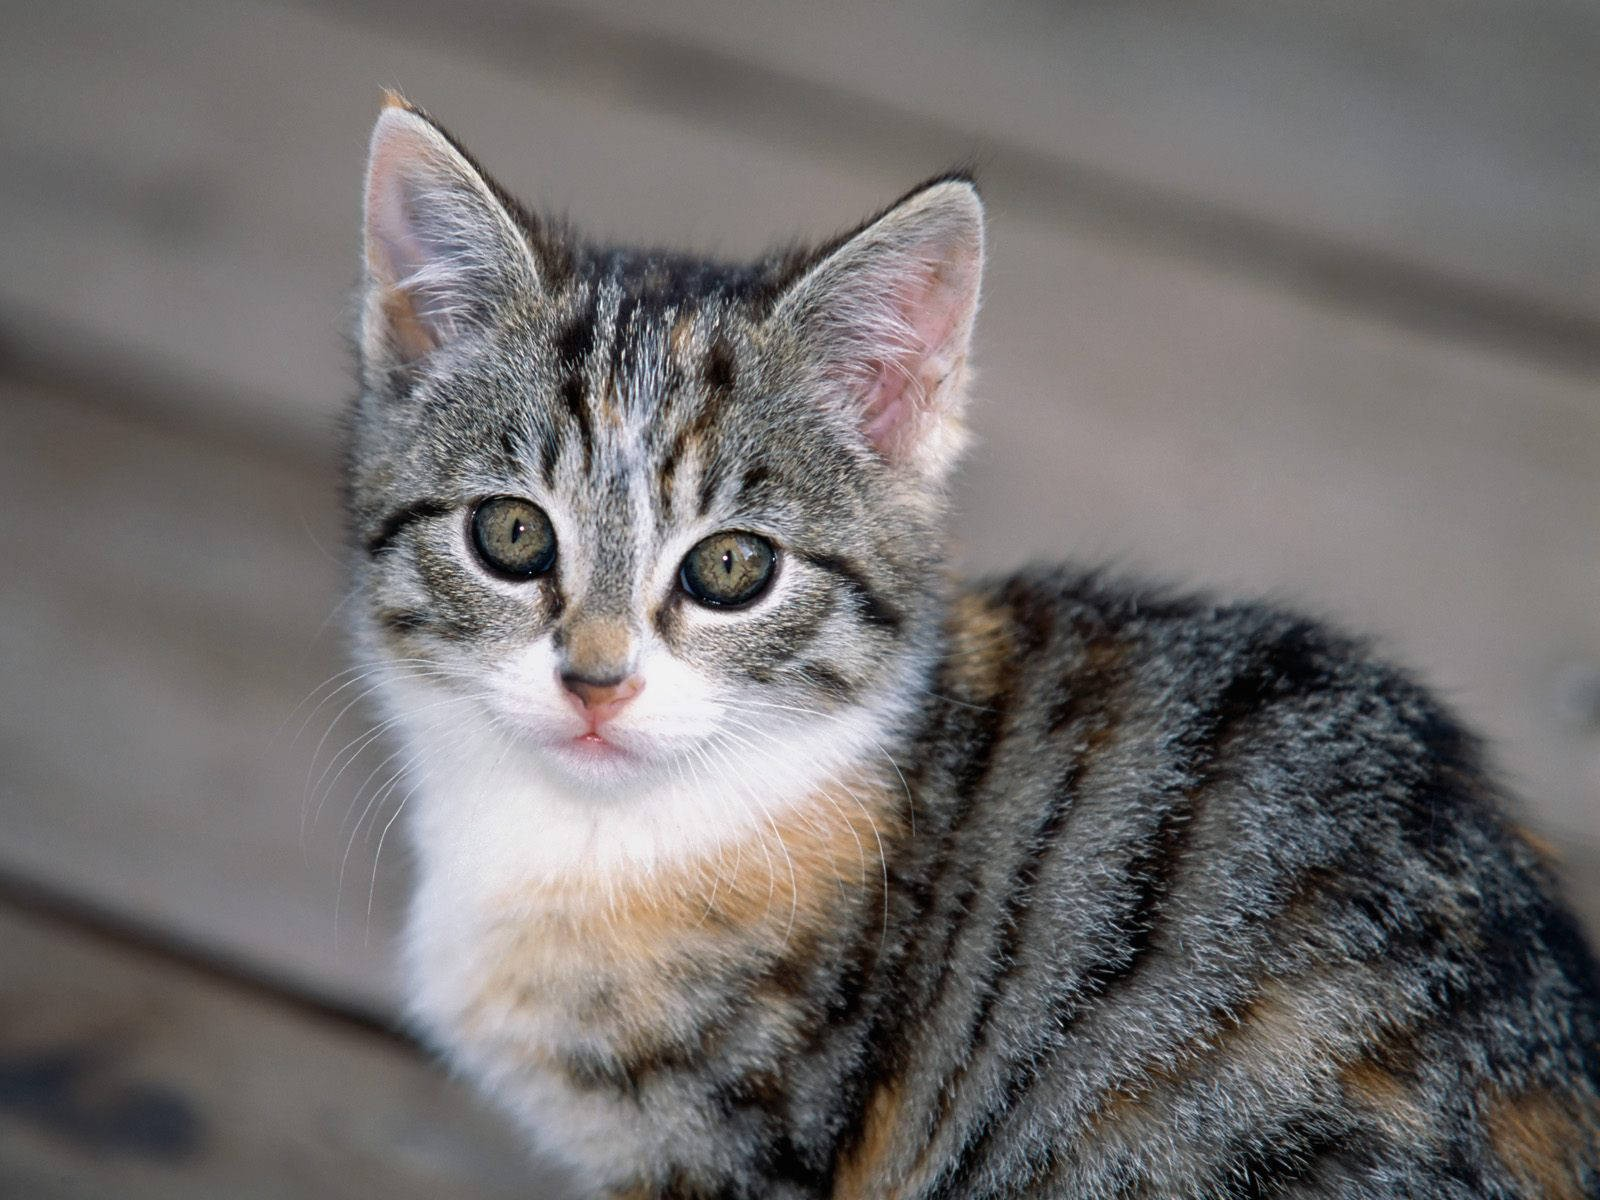 Cute Kitten Wallpaper For Ipad Cute Animals Image Gray And White Kitten Turning Back